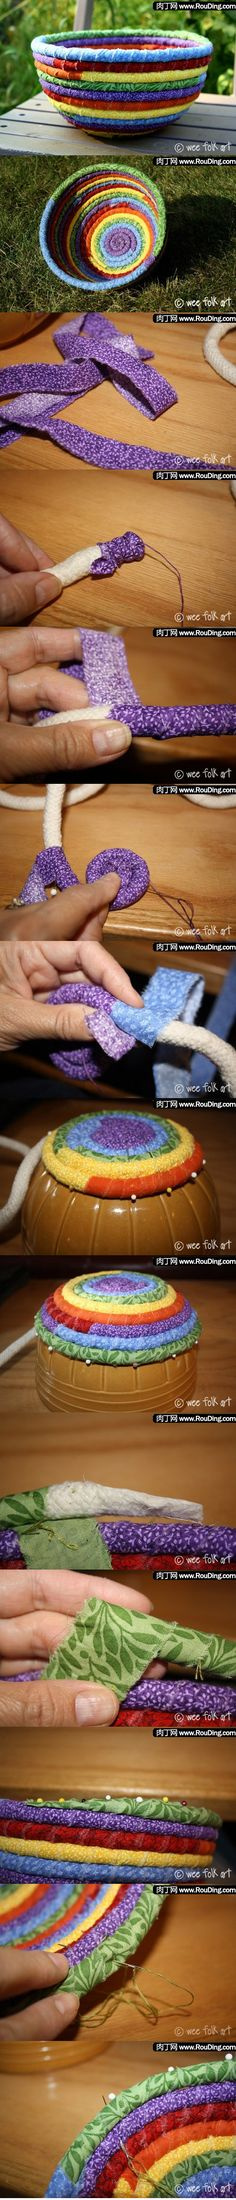 """Not just for bowls!!! Imagine all the other possibilities - handbags, placemats, small rugs - even a """"fabric"""" for a heavy warm jacket if you used a smaller diameter rope core and wove it instead of circling :)"""